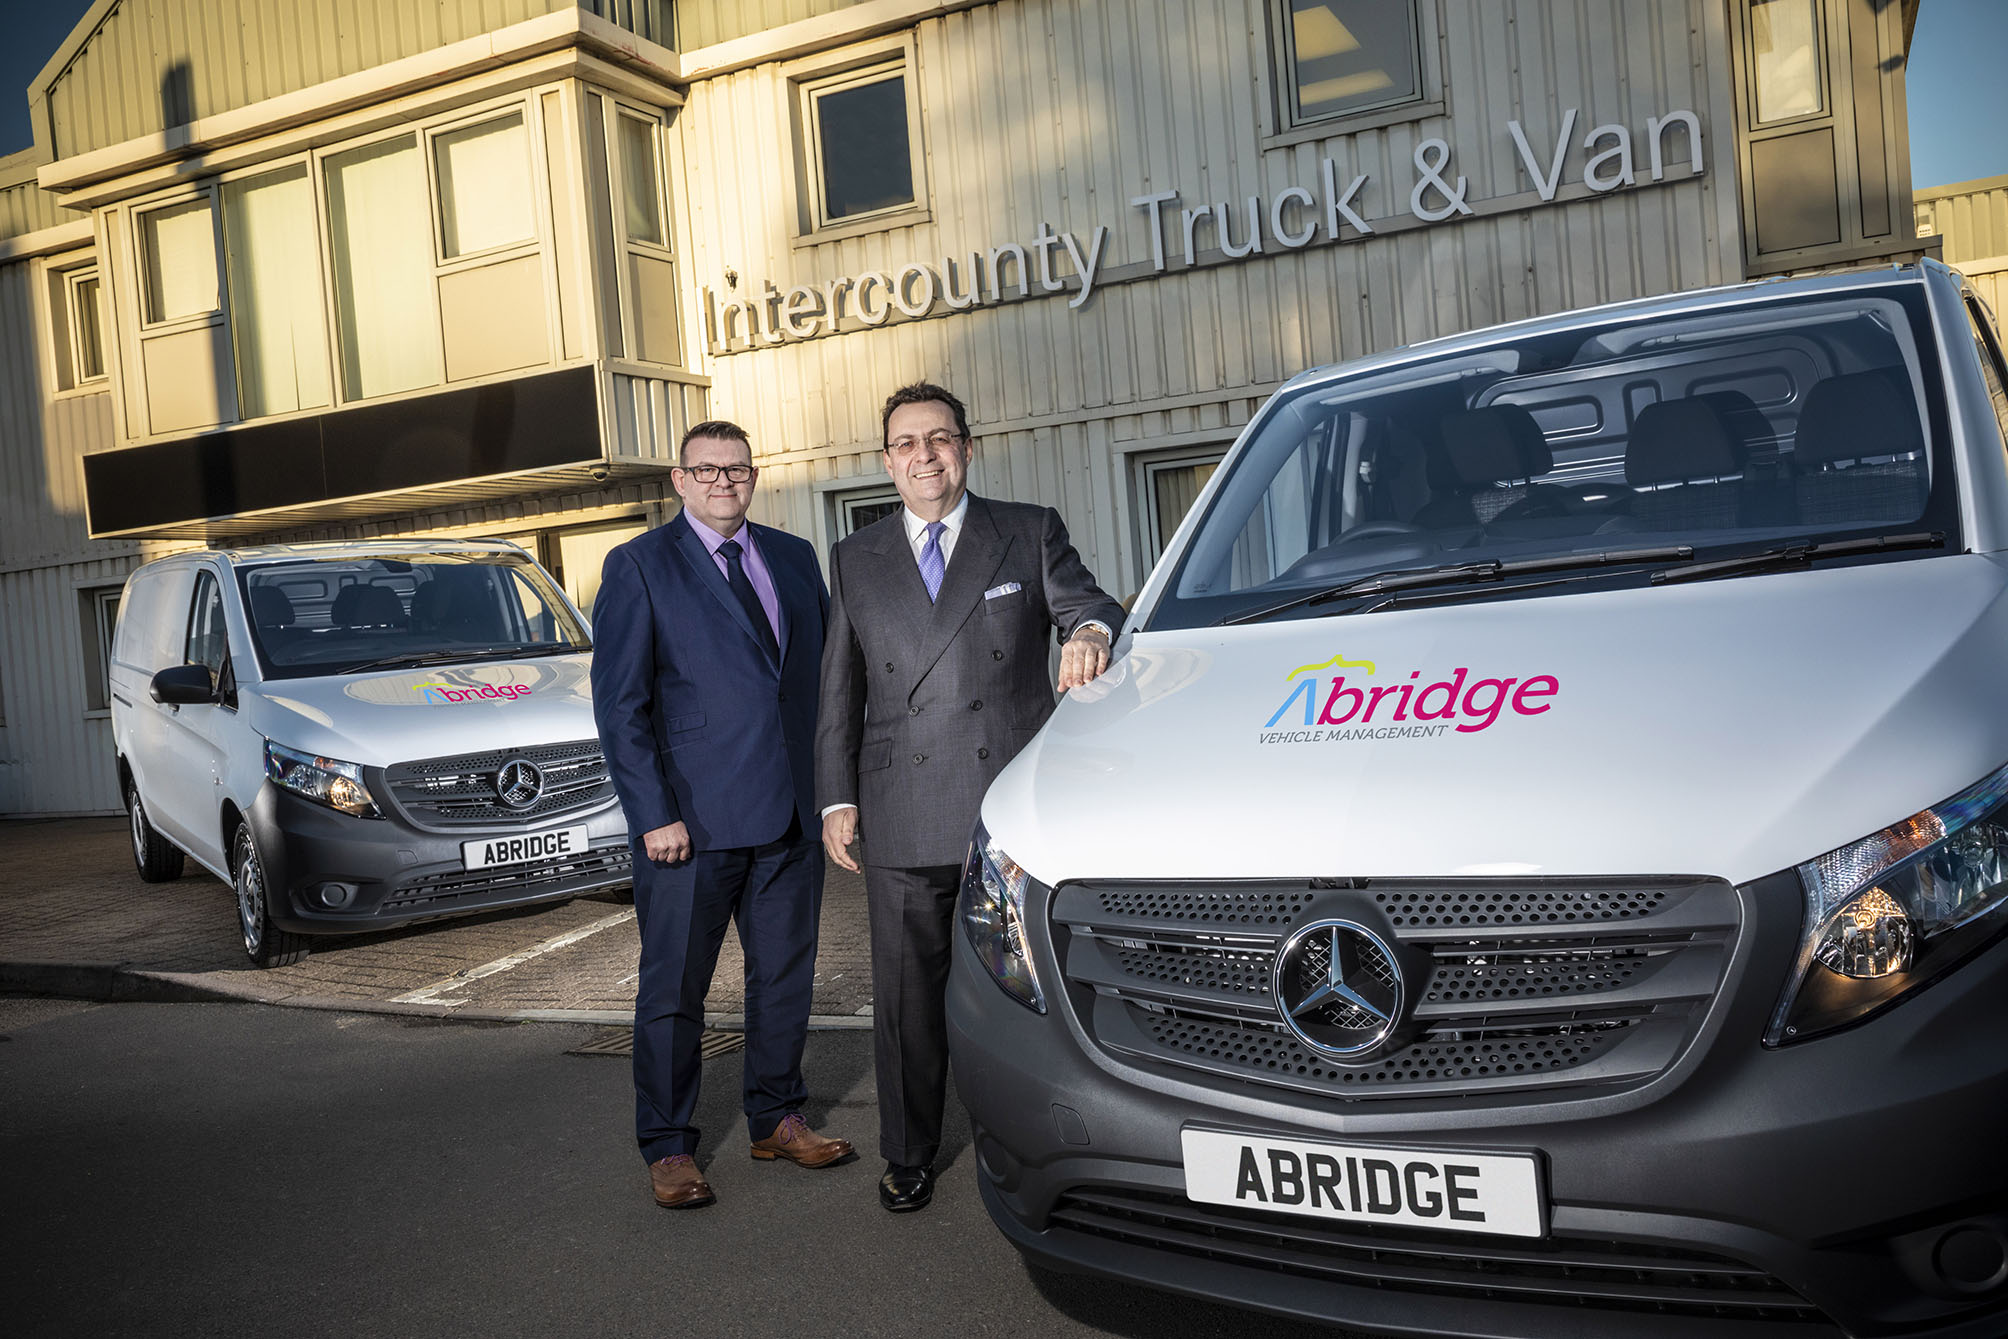 Abridge's Mercedes-Benz Vito courtesy fleet keeps businesses running during accident repairs